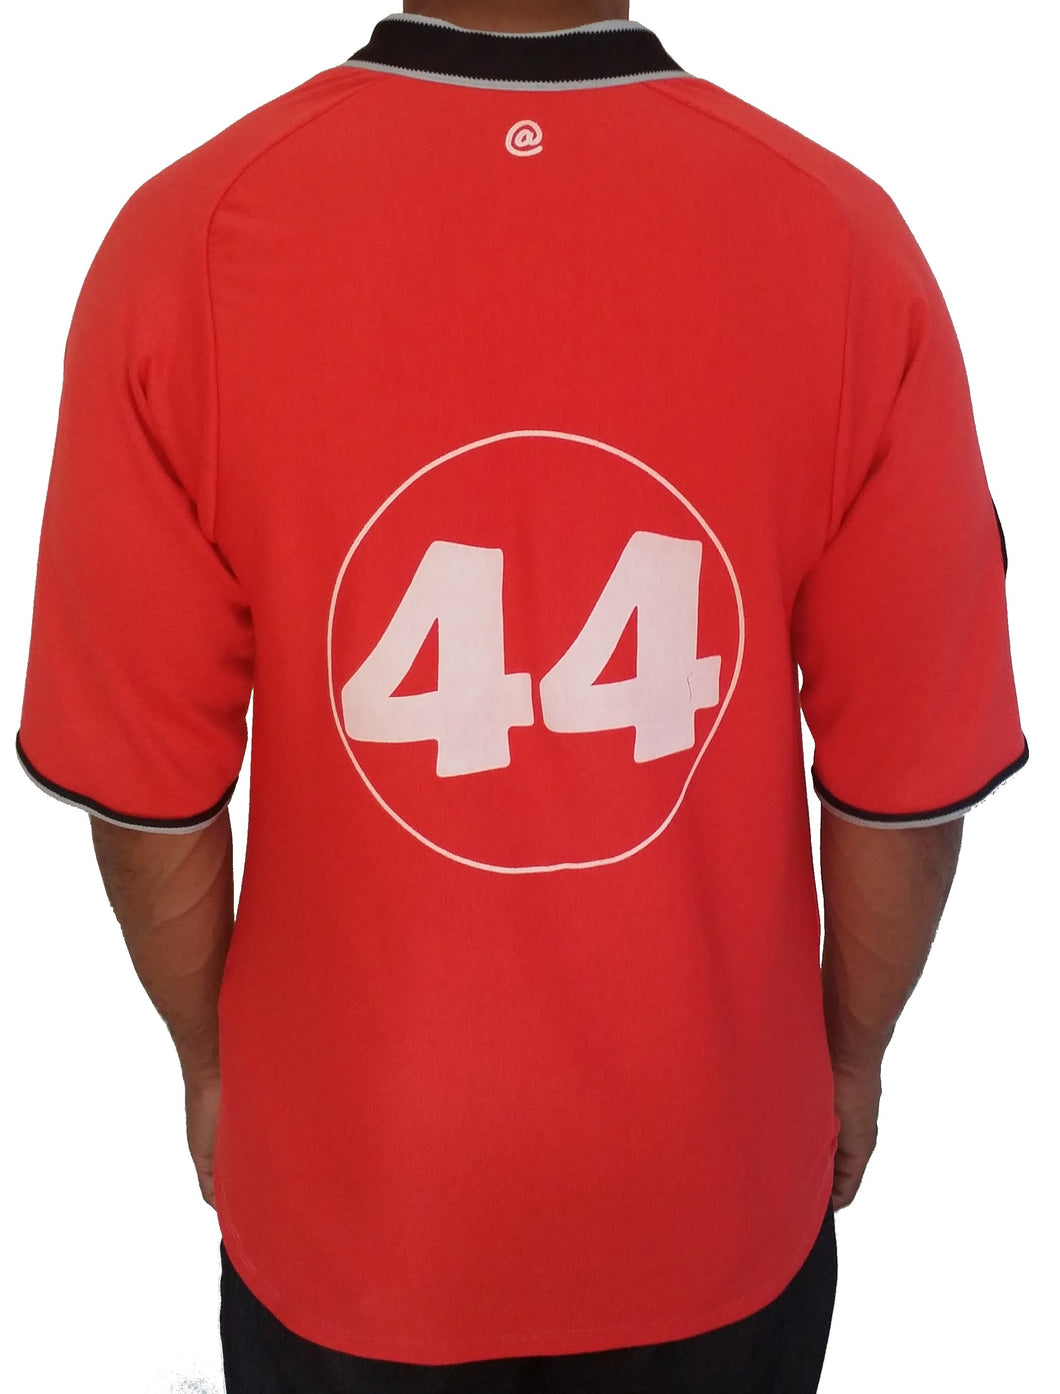 Orange number 44 Baseball Jersey. Back view.